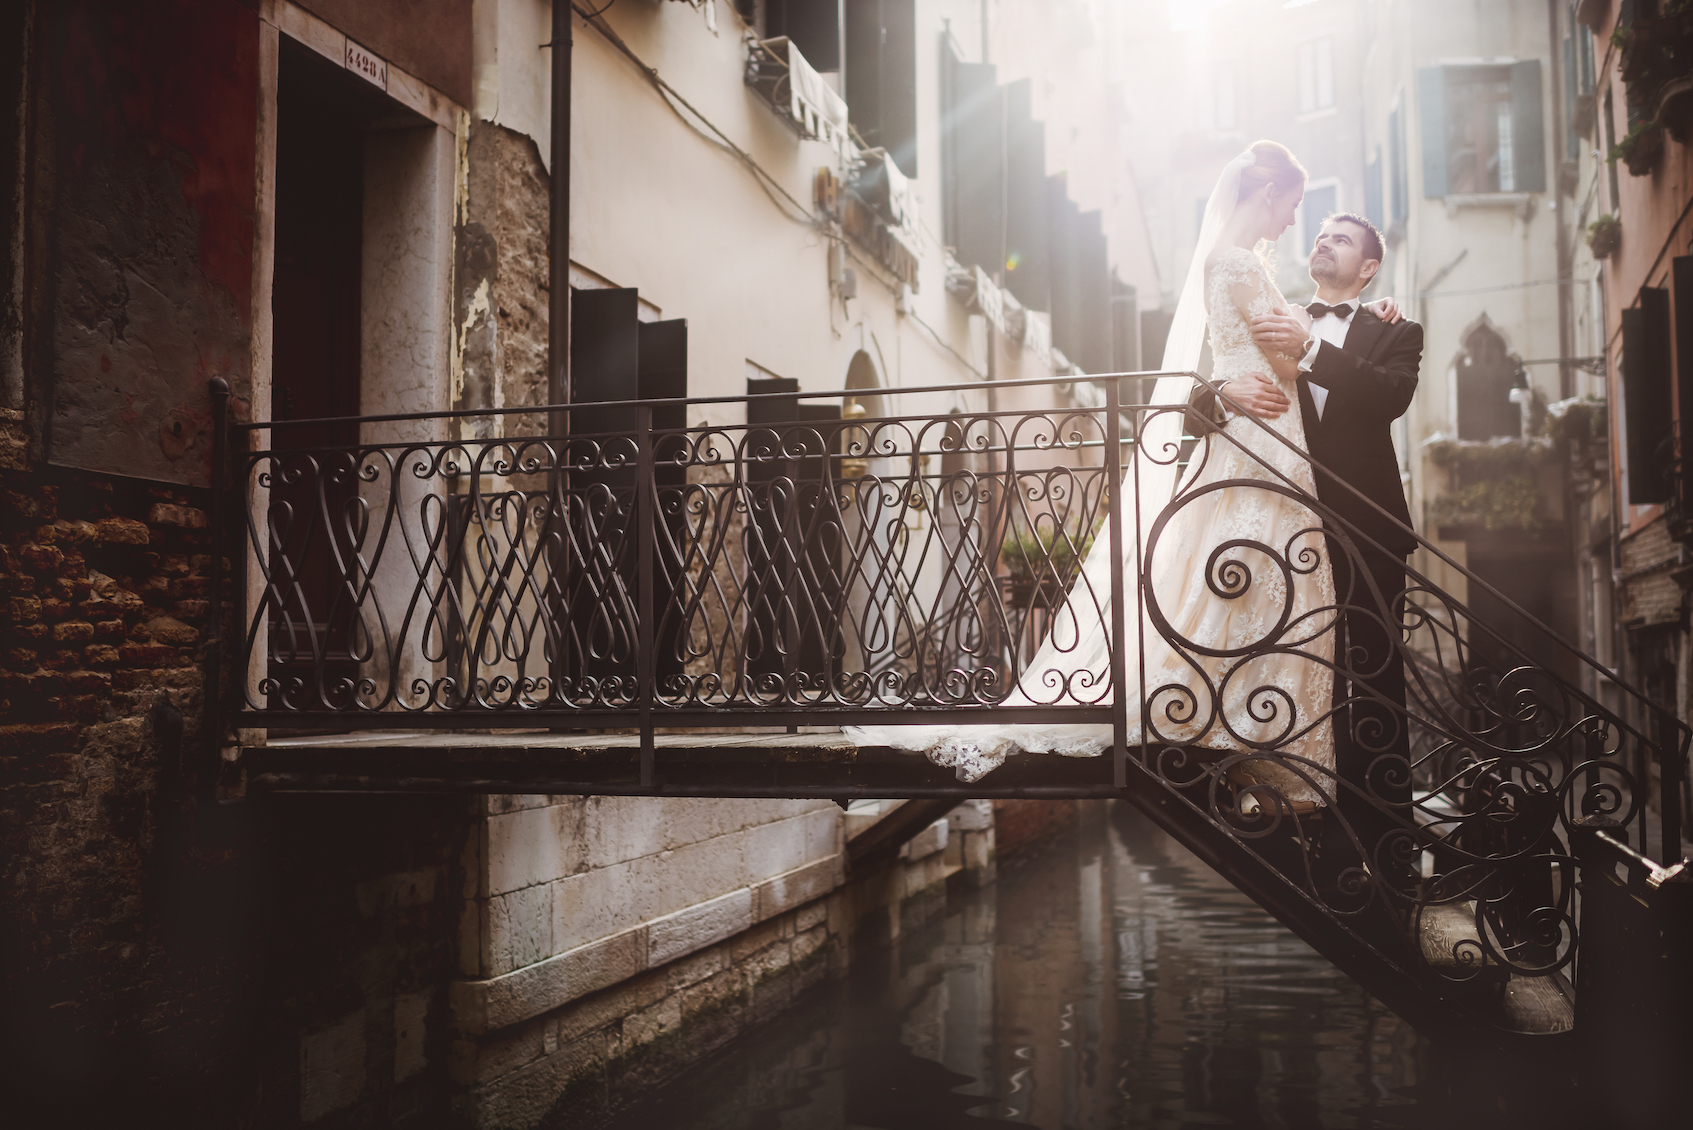 Venice-Wedding-photography-matej-trasak-9.jpg